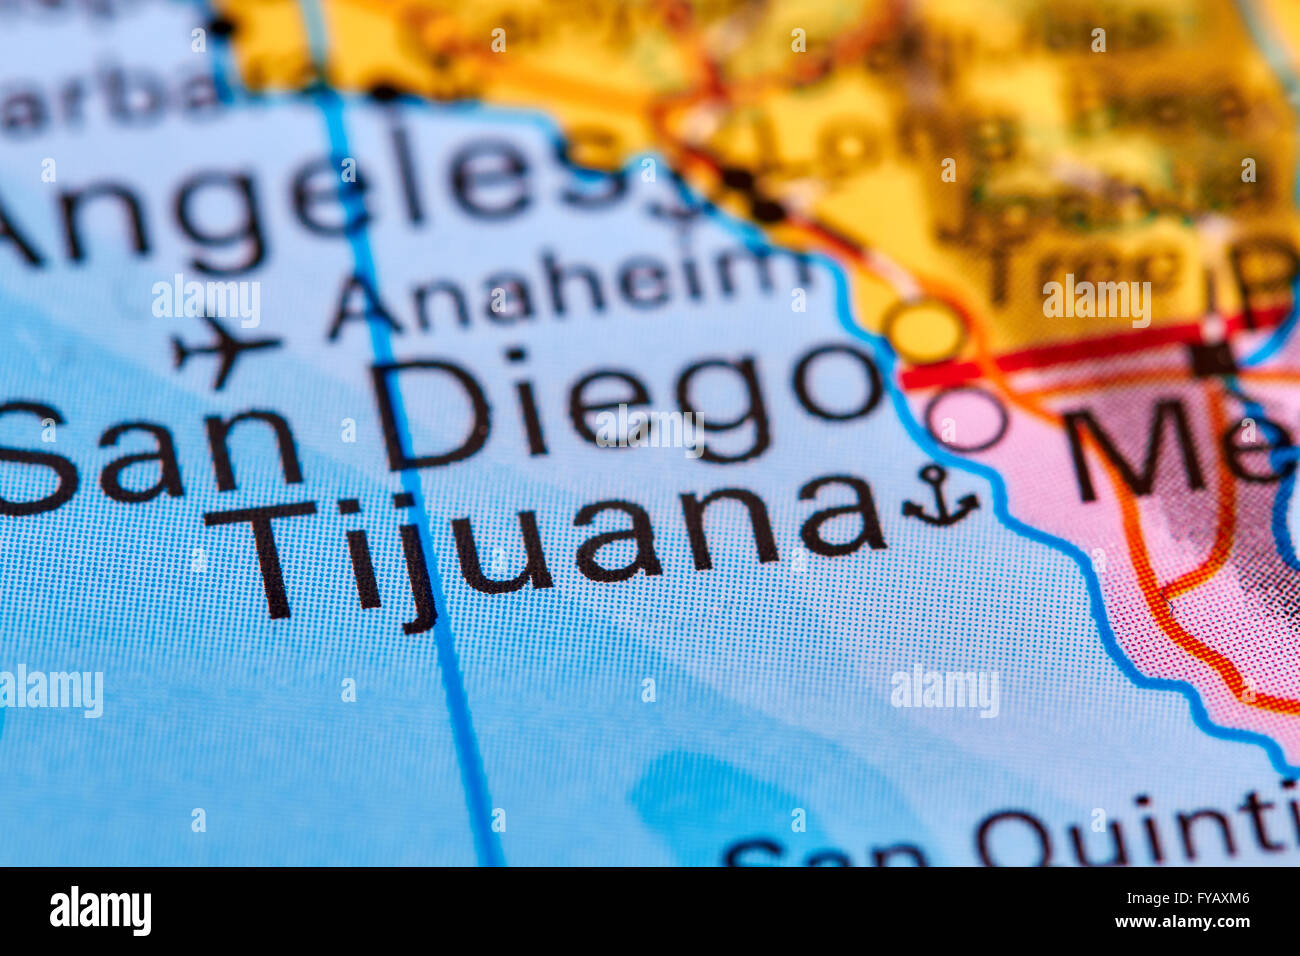 Usa Border Map Mexico Stock Photos Usa Border Map Mexico Stock - Mexico and usa map